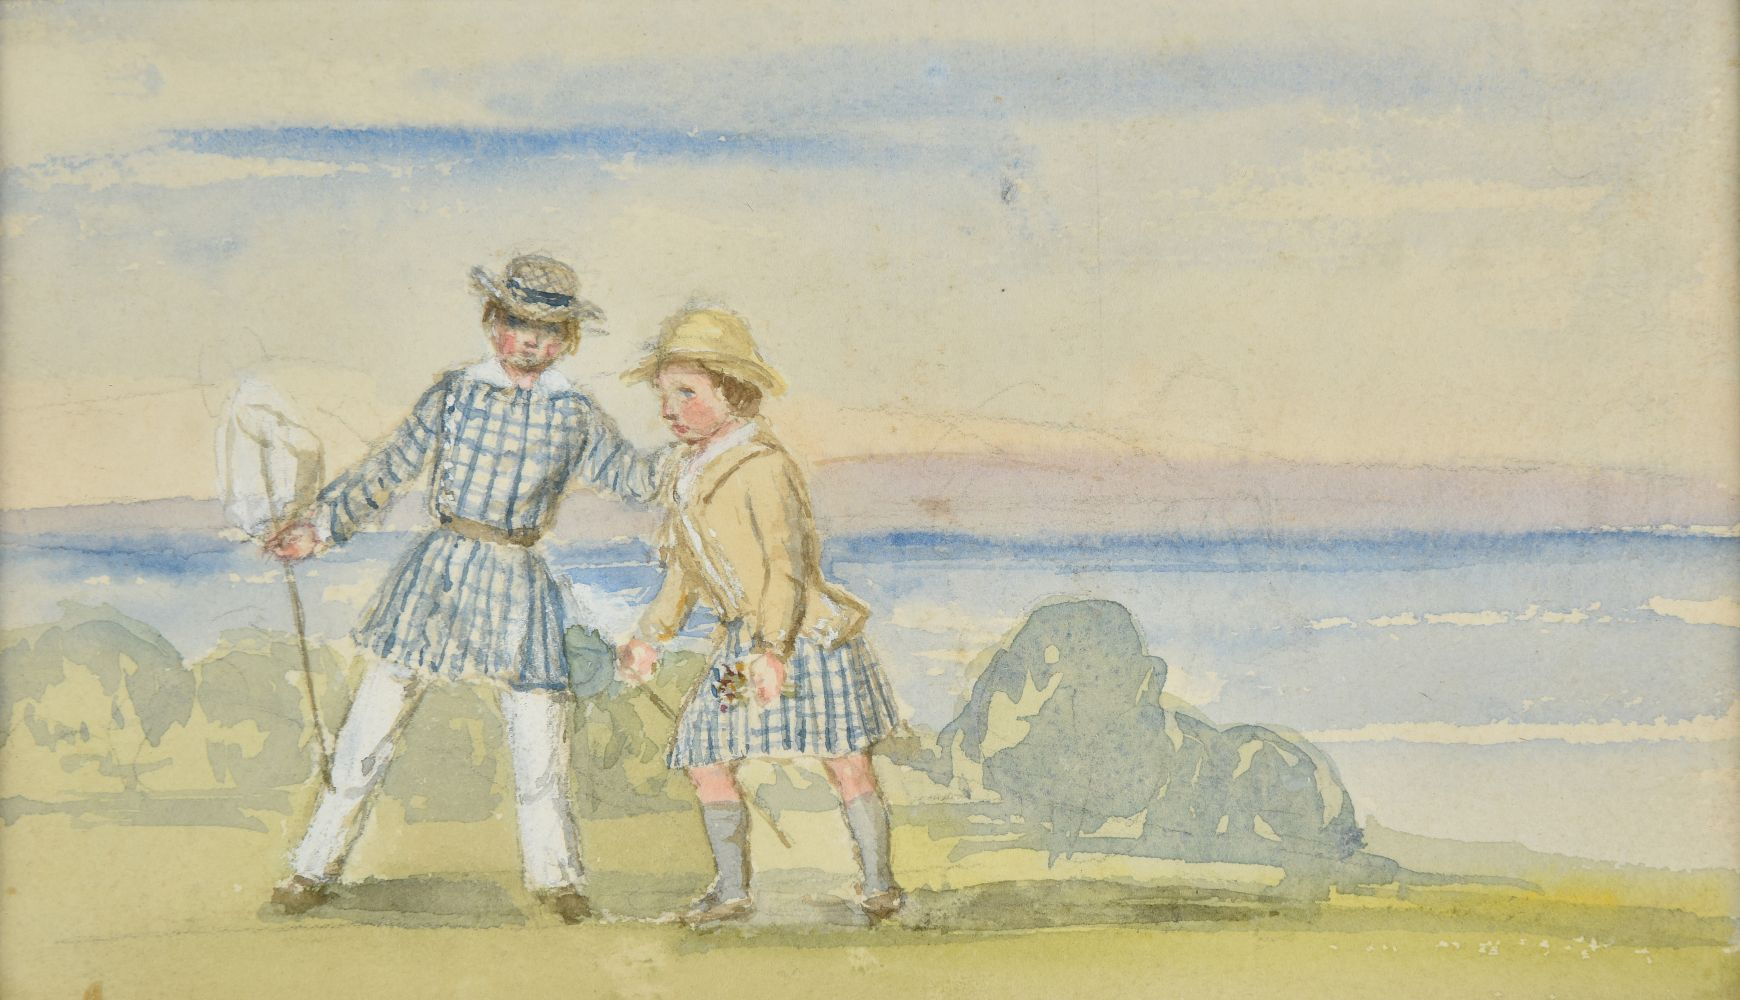 Lot 296 - * Victoria (Queen of Great Britain, 1819-1901). Edward, Prince of Wales, and Prince Alfred